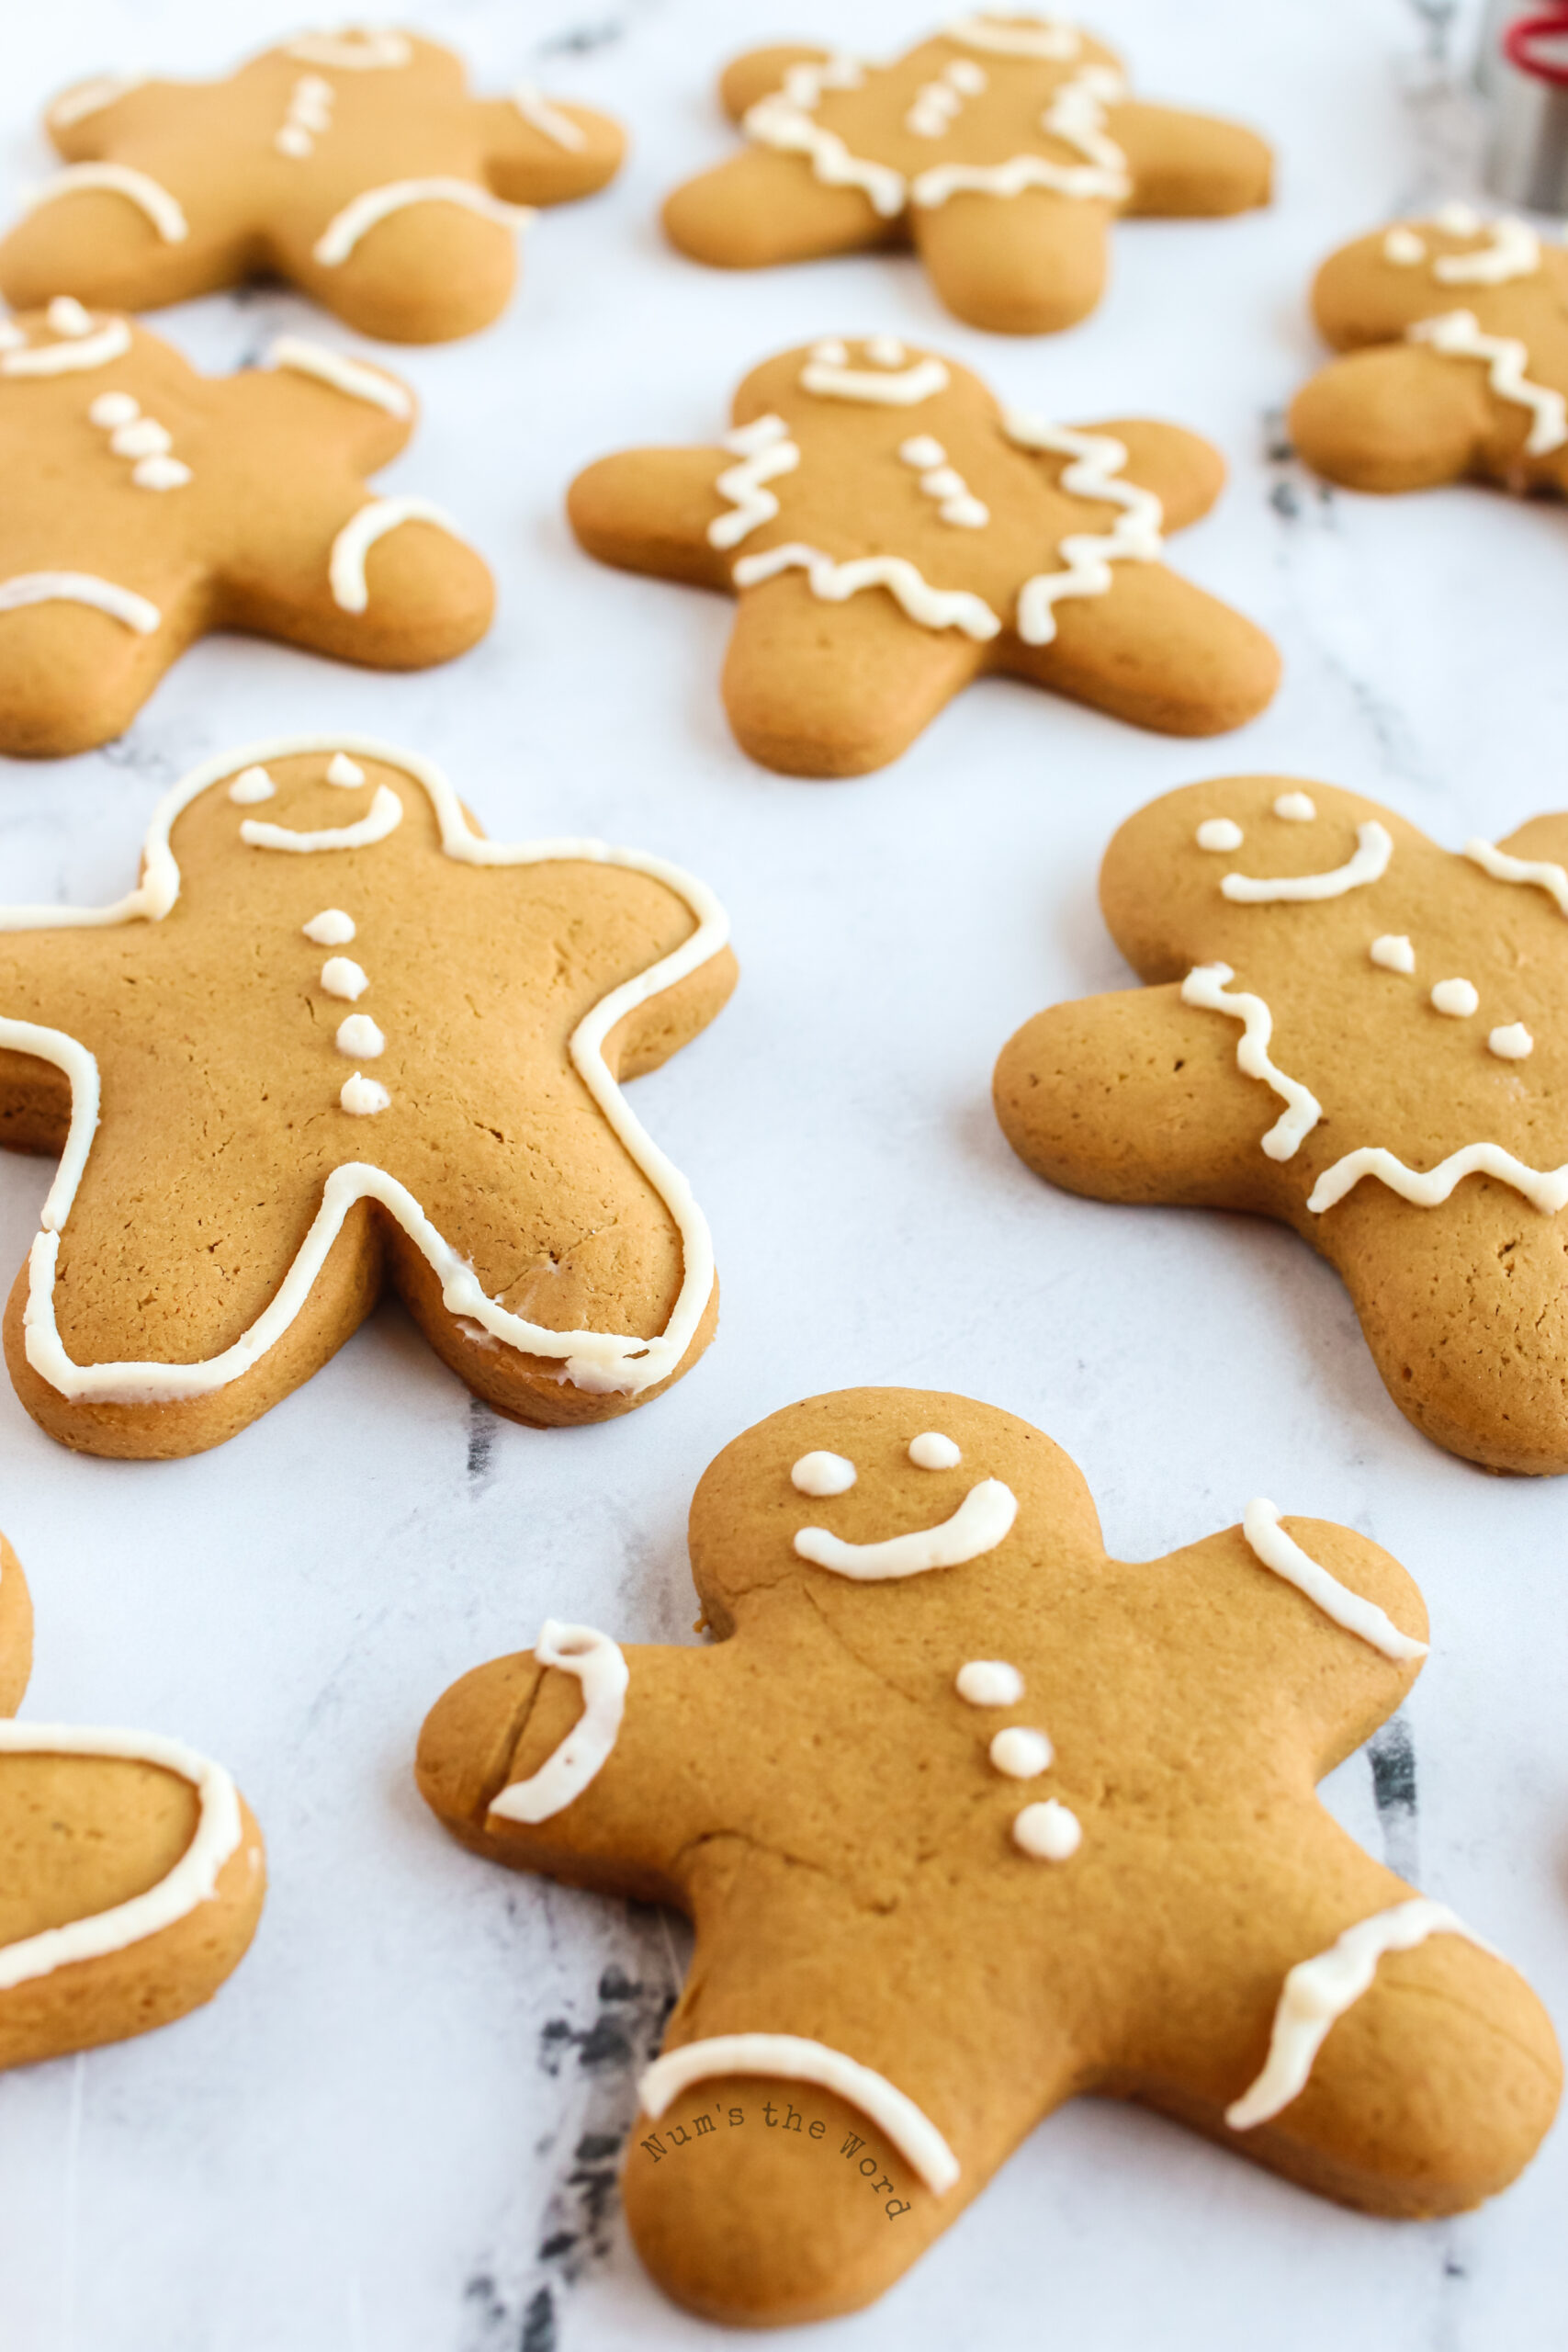 top side view of decorated gingerbread cookies on parchment paper